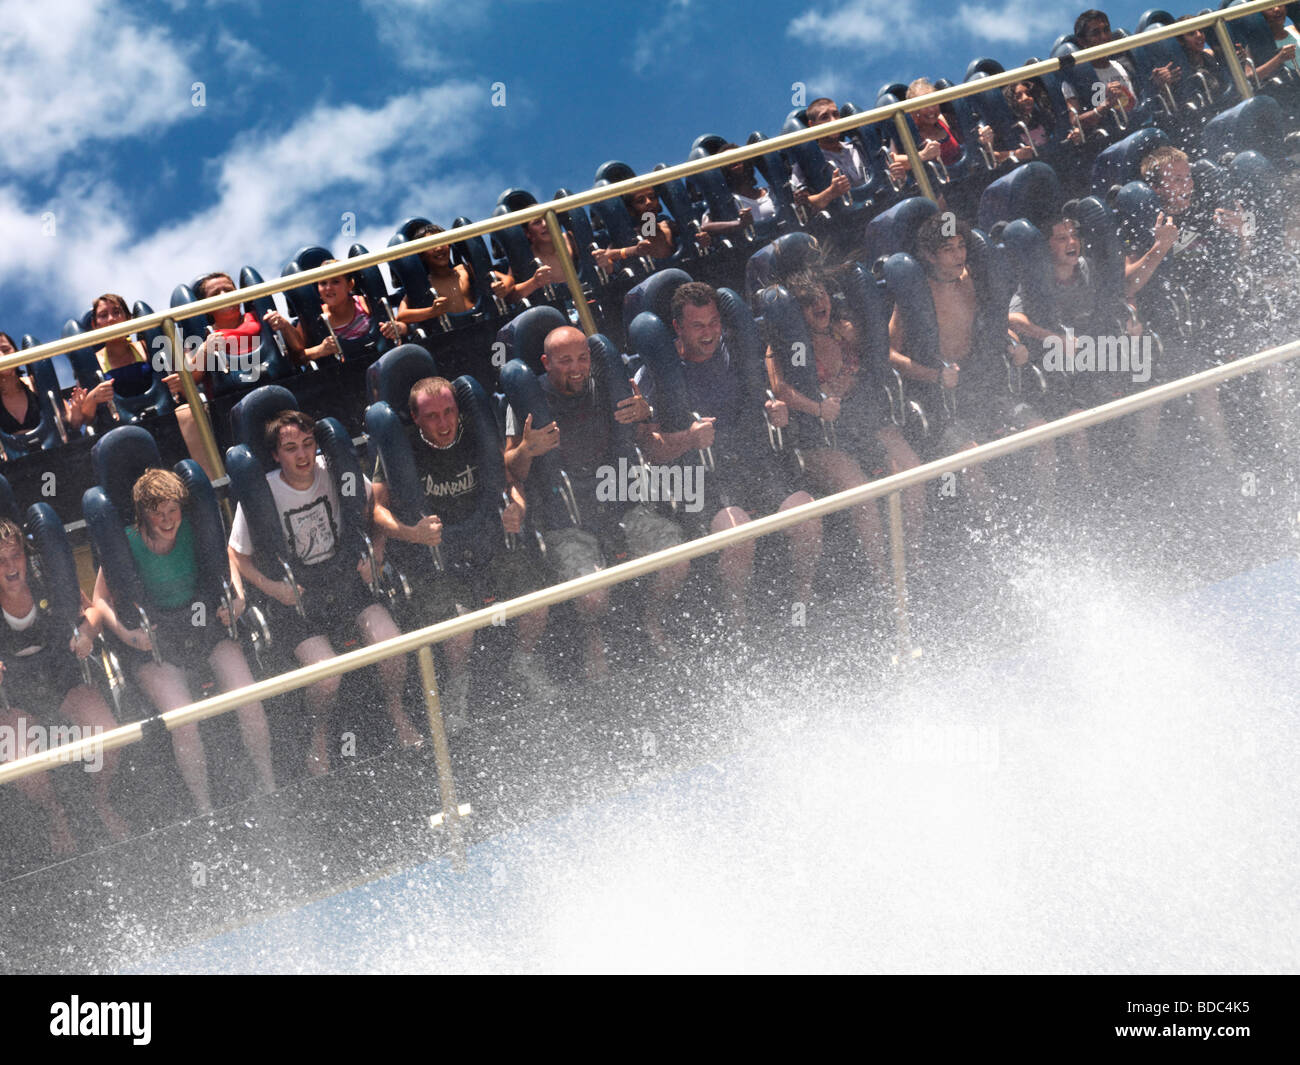 People on Riptide thrill ride descending towards the fountains of water - Stock Image